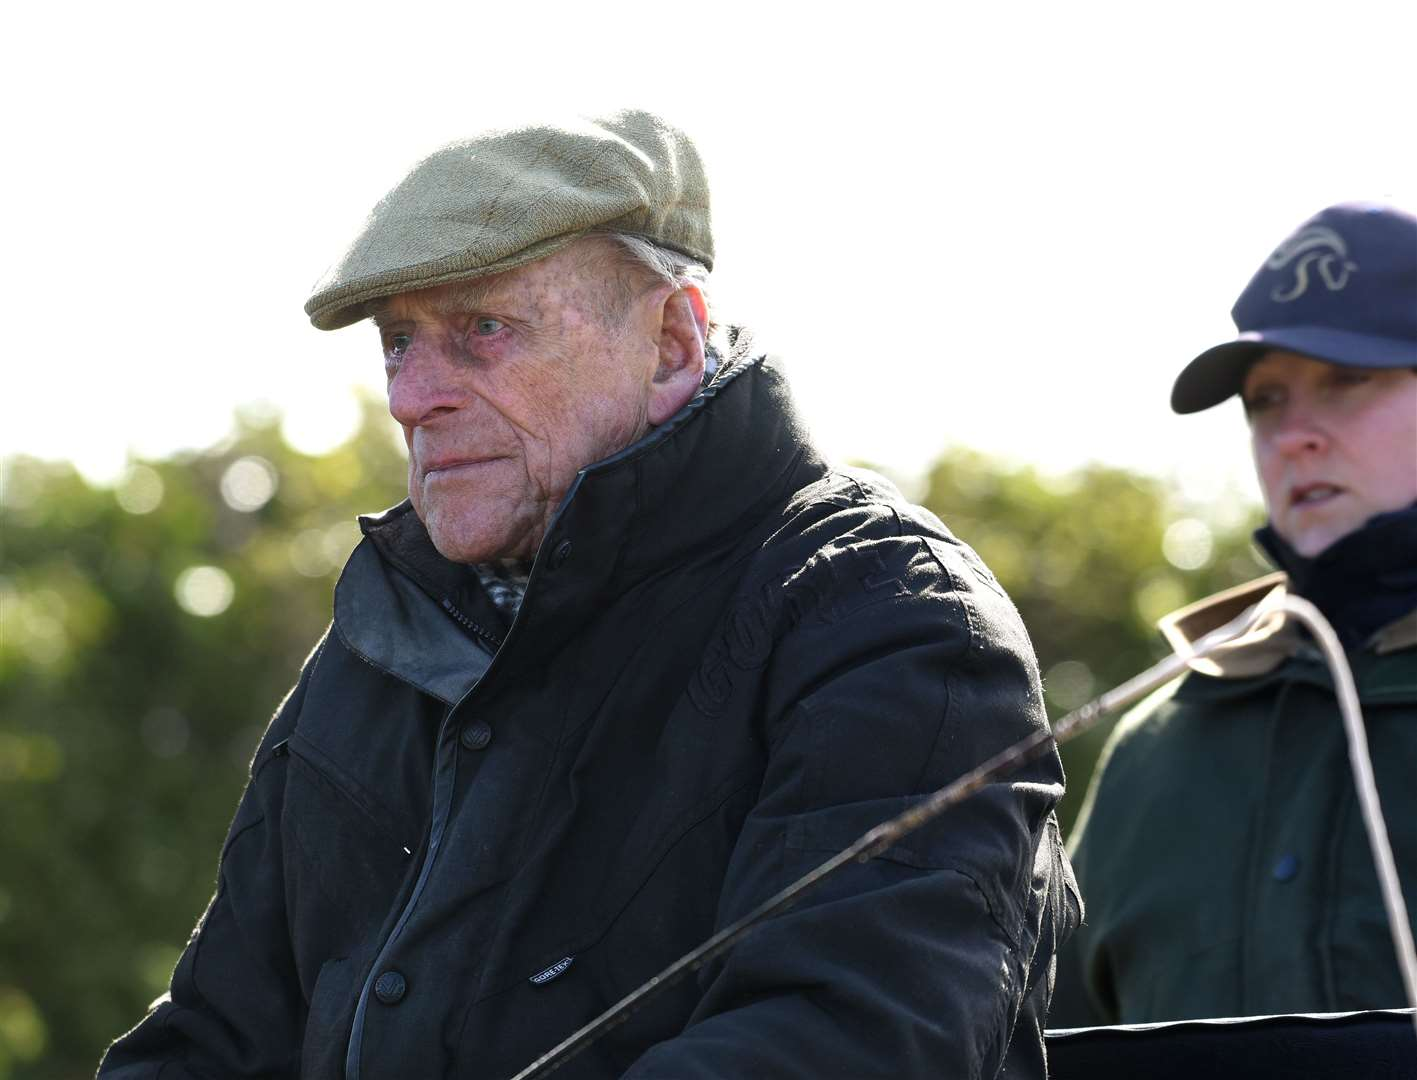 The Duke of Edinburgh, who has died aged 99, pursued his passion for carriage driving well into his 90s.